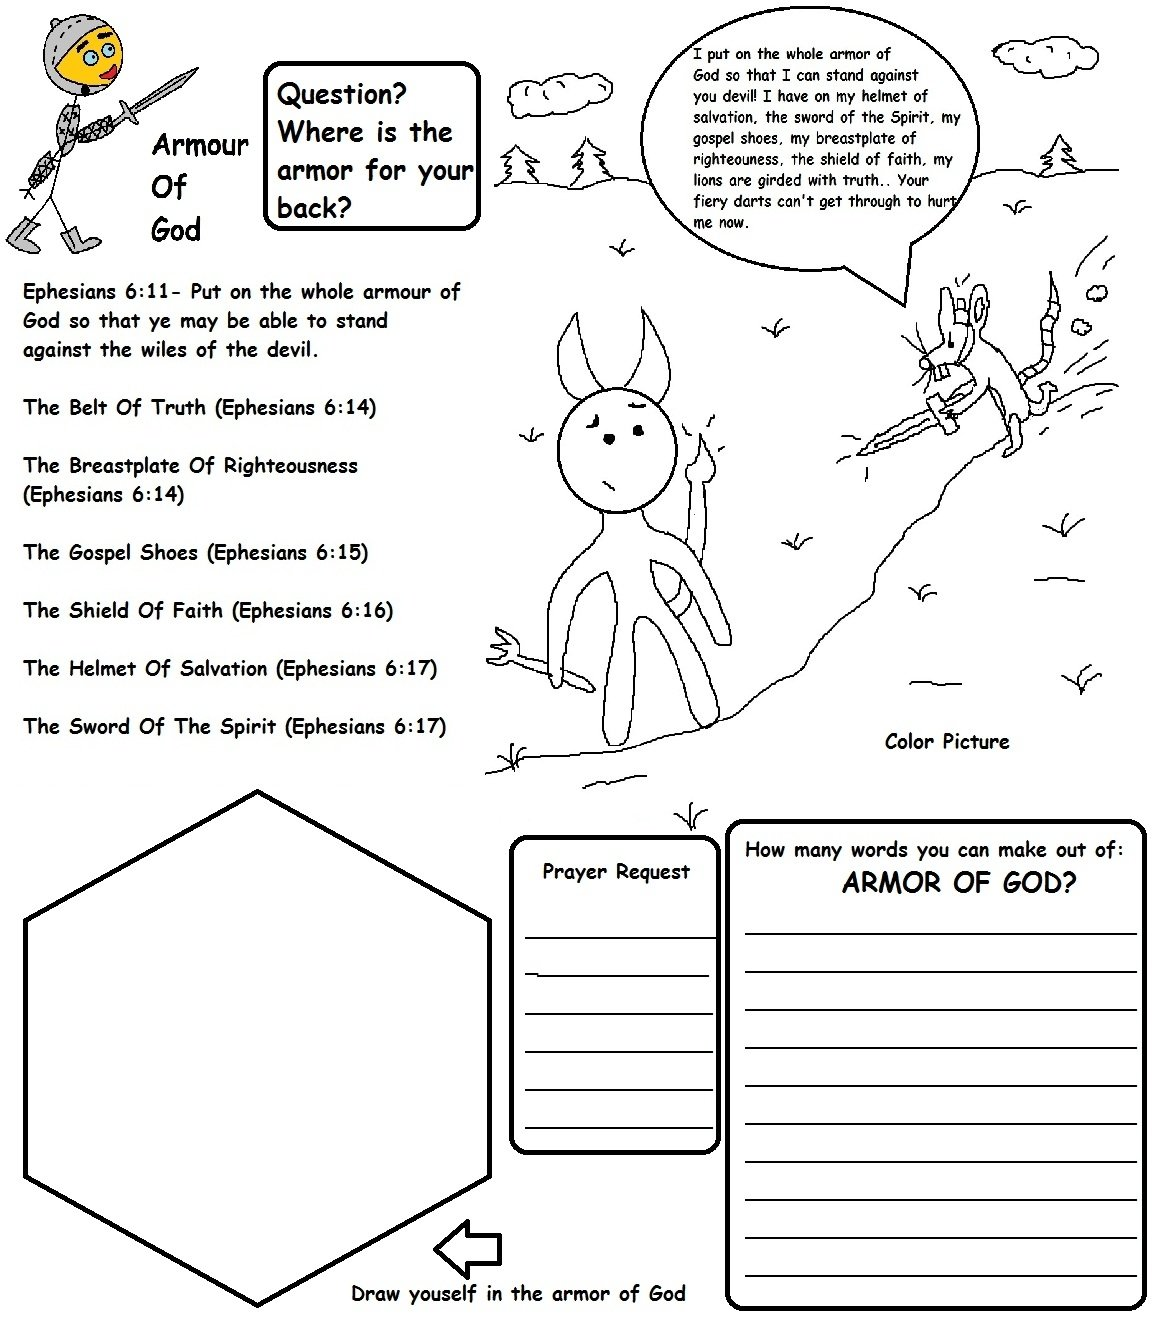 Armor Of God Activities For Kids Coloring Page Sporturka Full Jpg 1152x1319 Breastplate Template